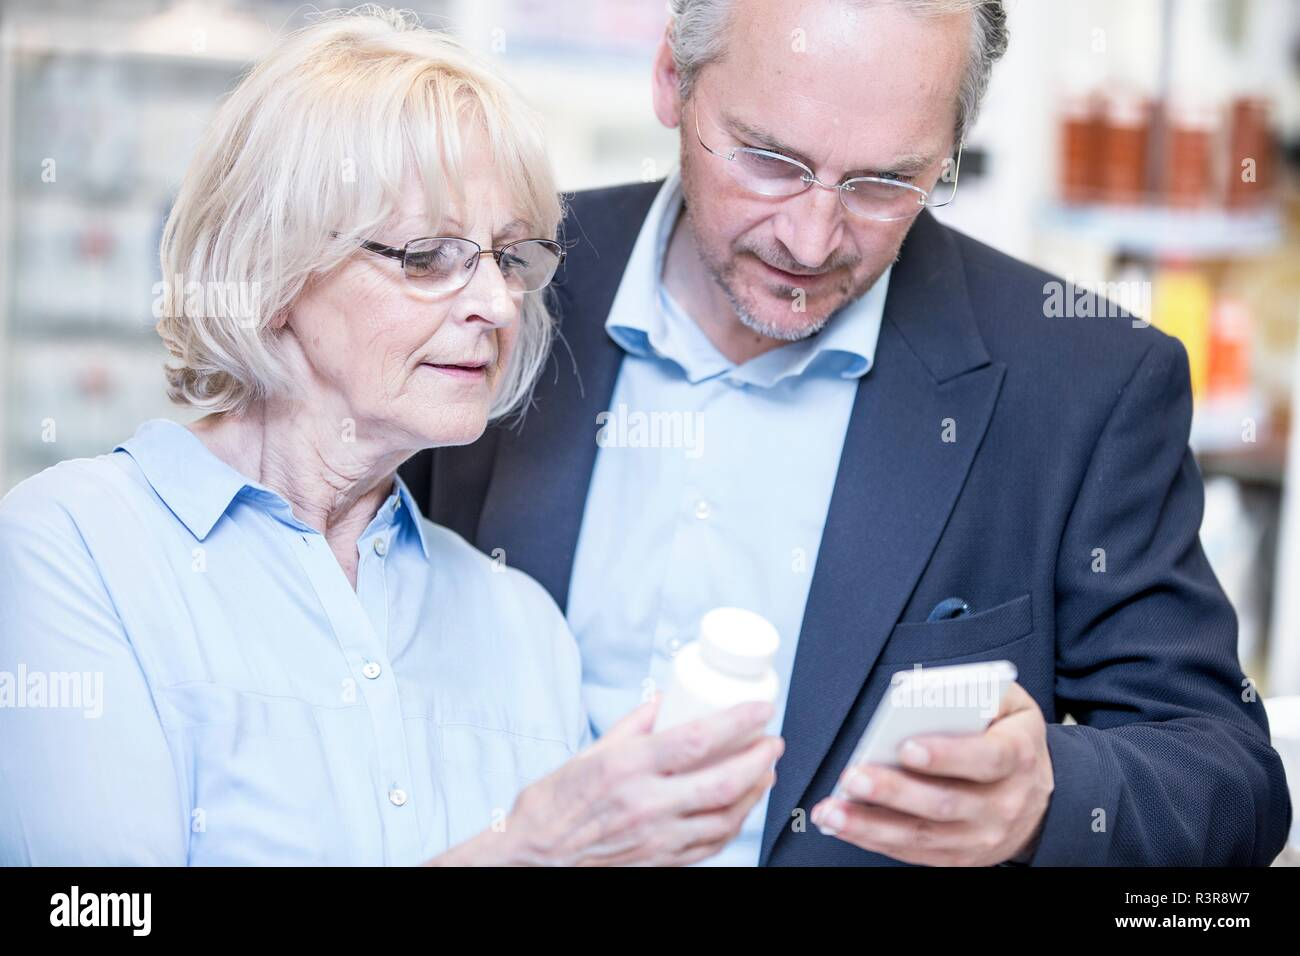 Senior couple checking medicine on mobile phone in pharmacy. - Stock Image